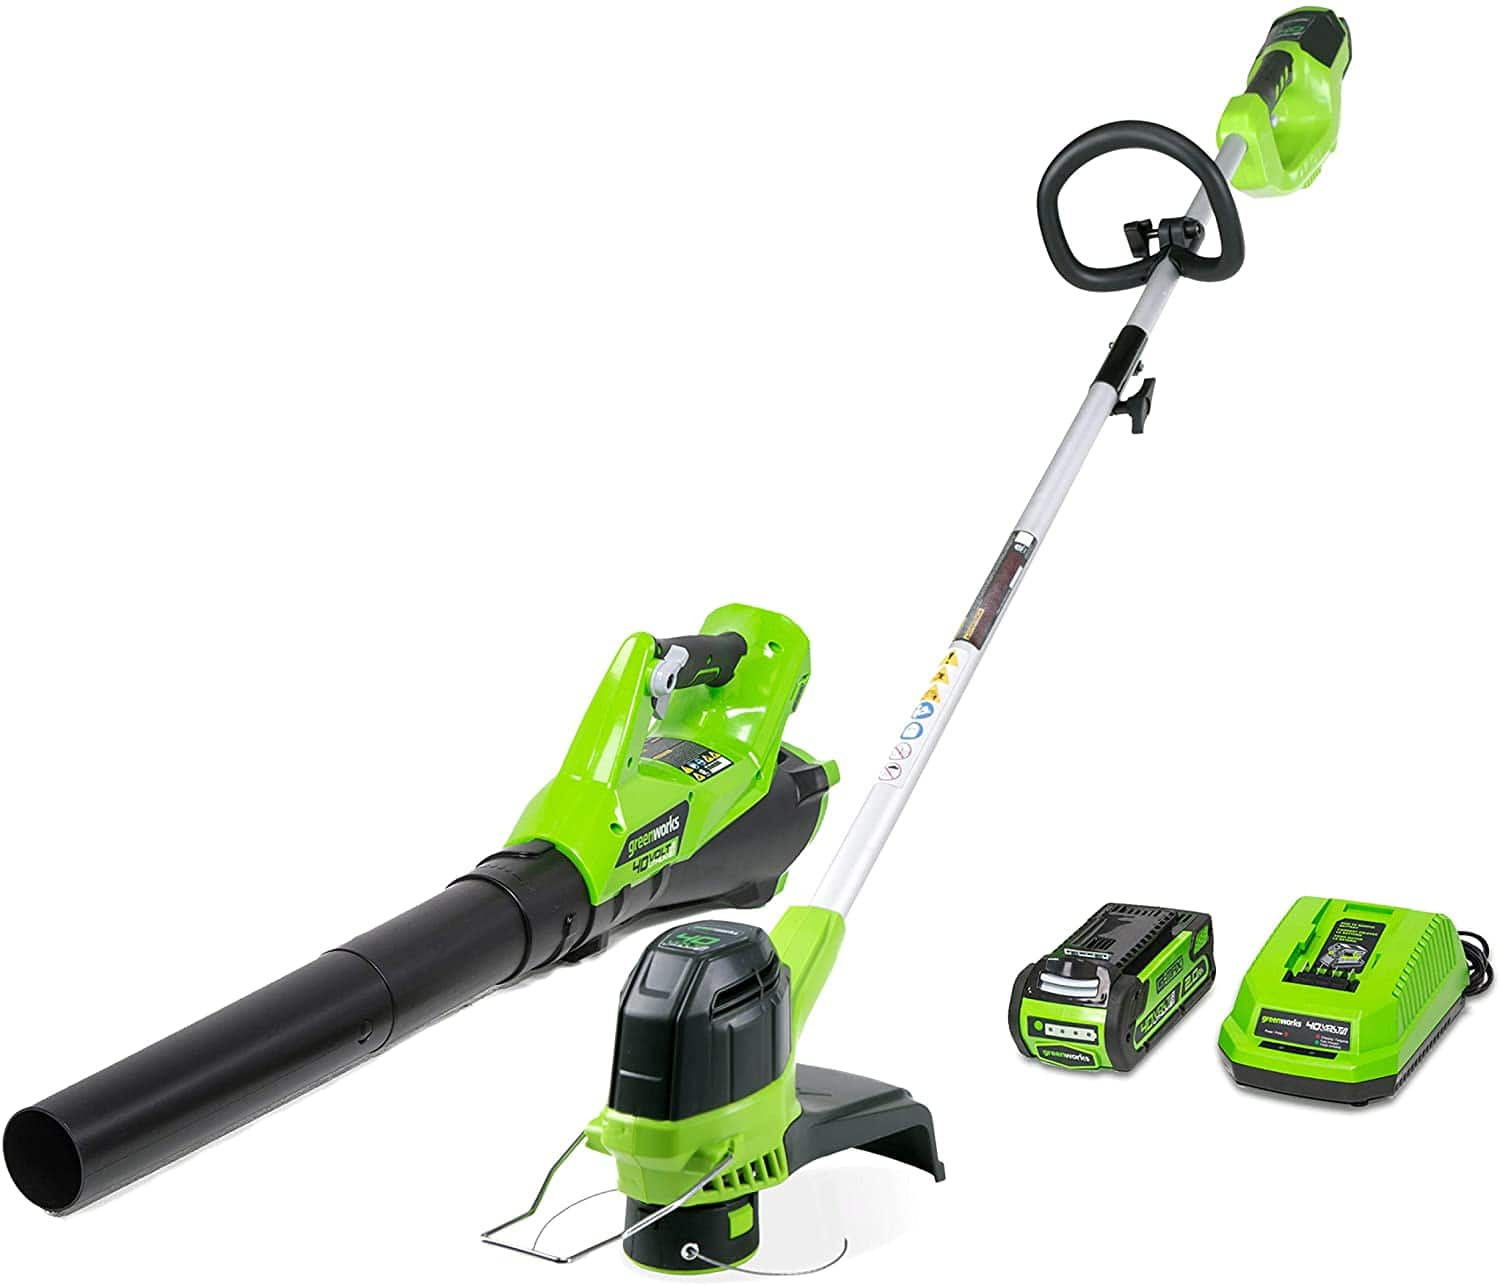 Greenworks G-MAX 40V Cordless String Trimmer and Leaf Blower Combo Pack, 2.0Ah Battery and Charger Included STBA40B210 - $116.99